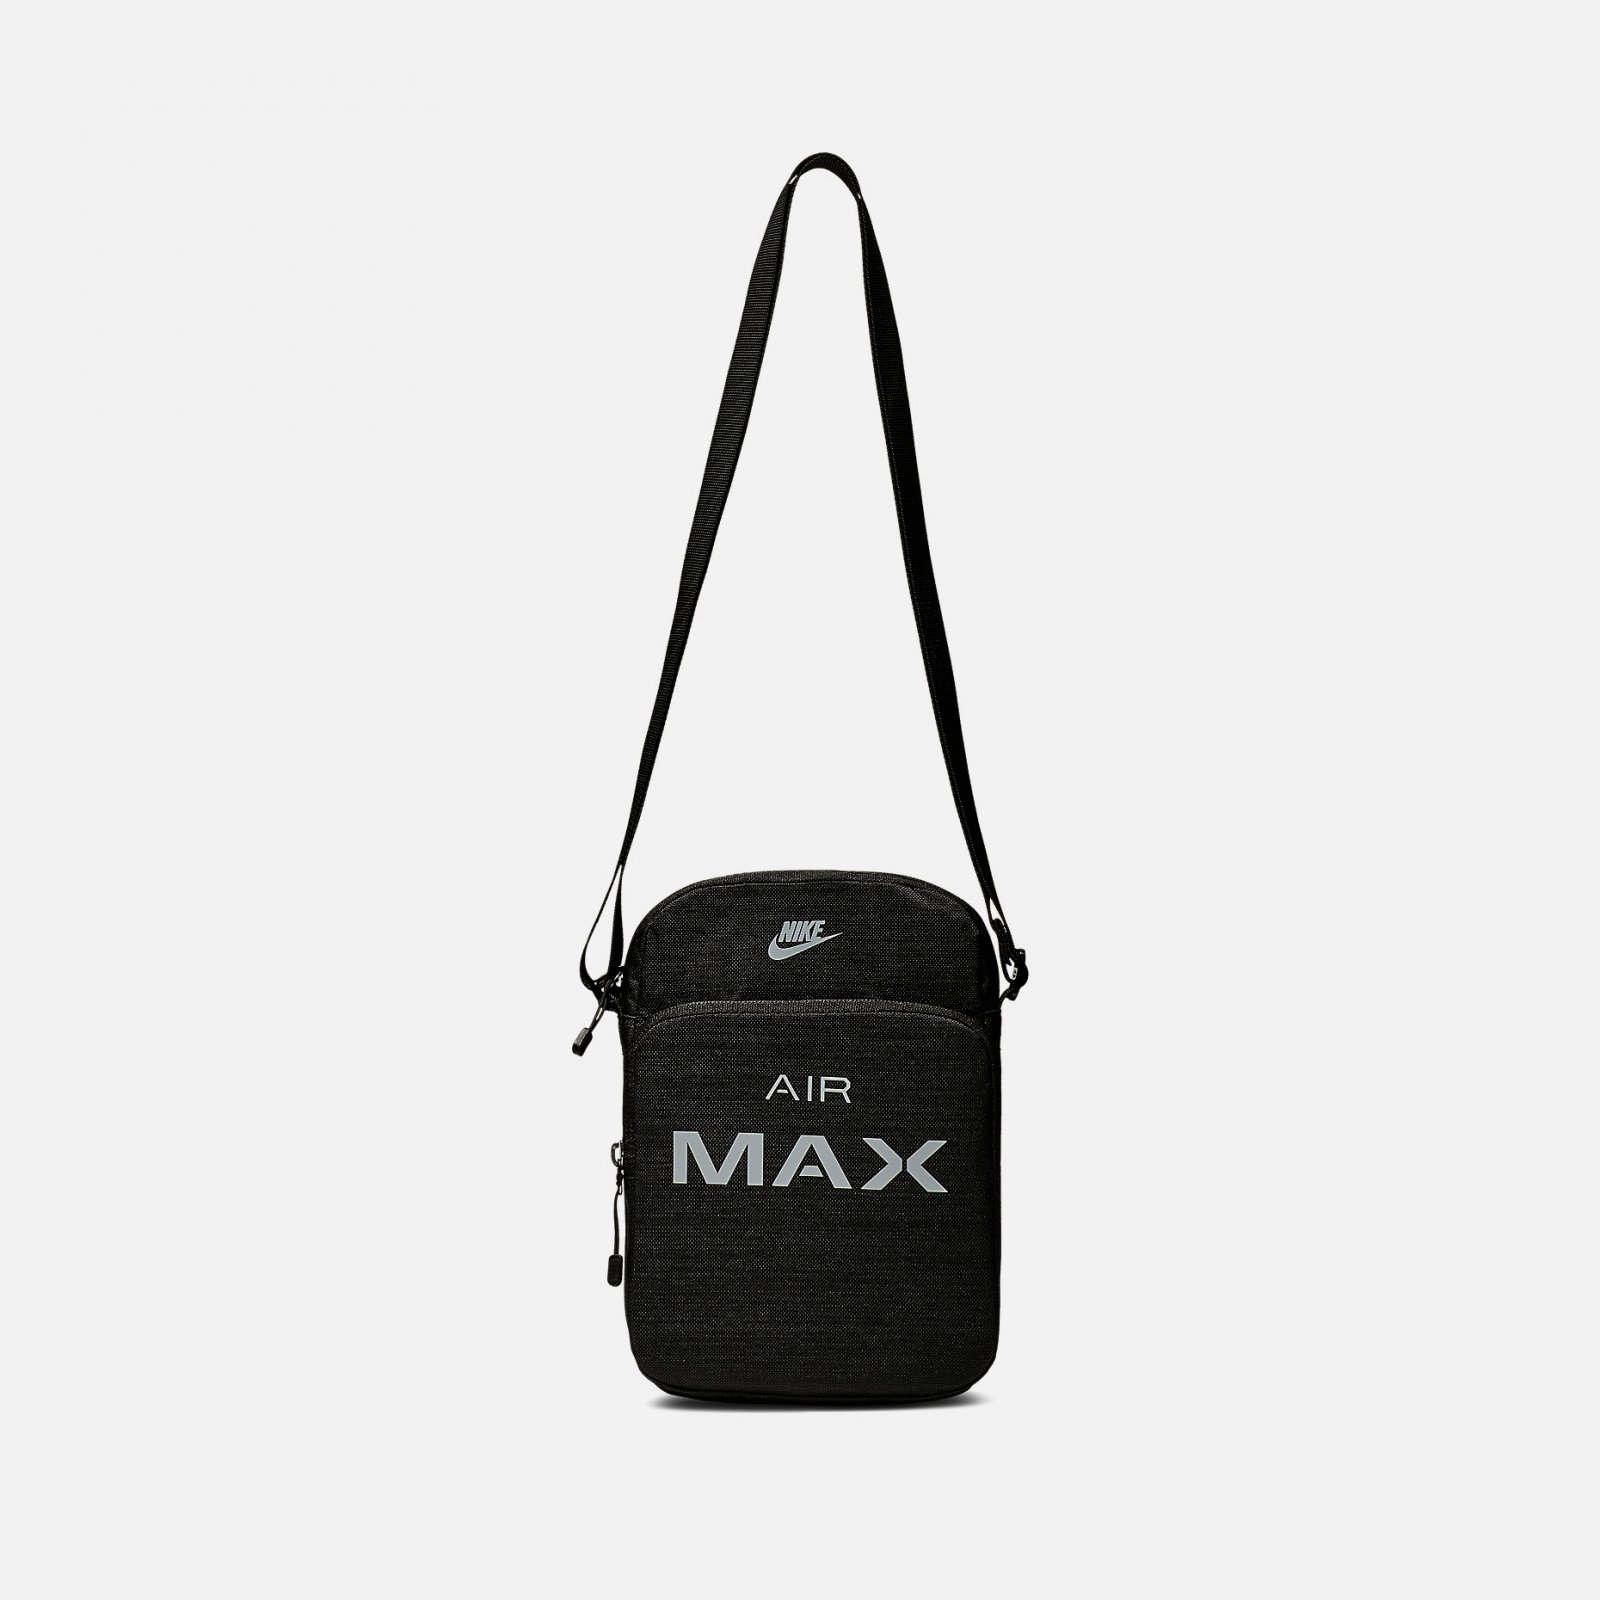 6f1dbc6123 Nike Air Max Small Items Shoulder Bag Black with 2 Zip Pockets NWT  BA5776-013